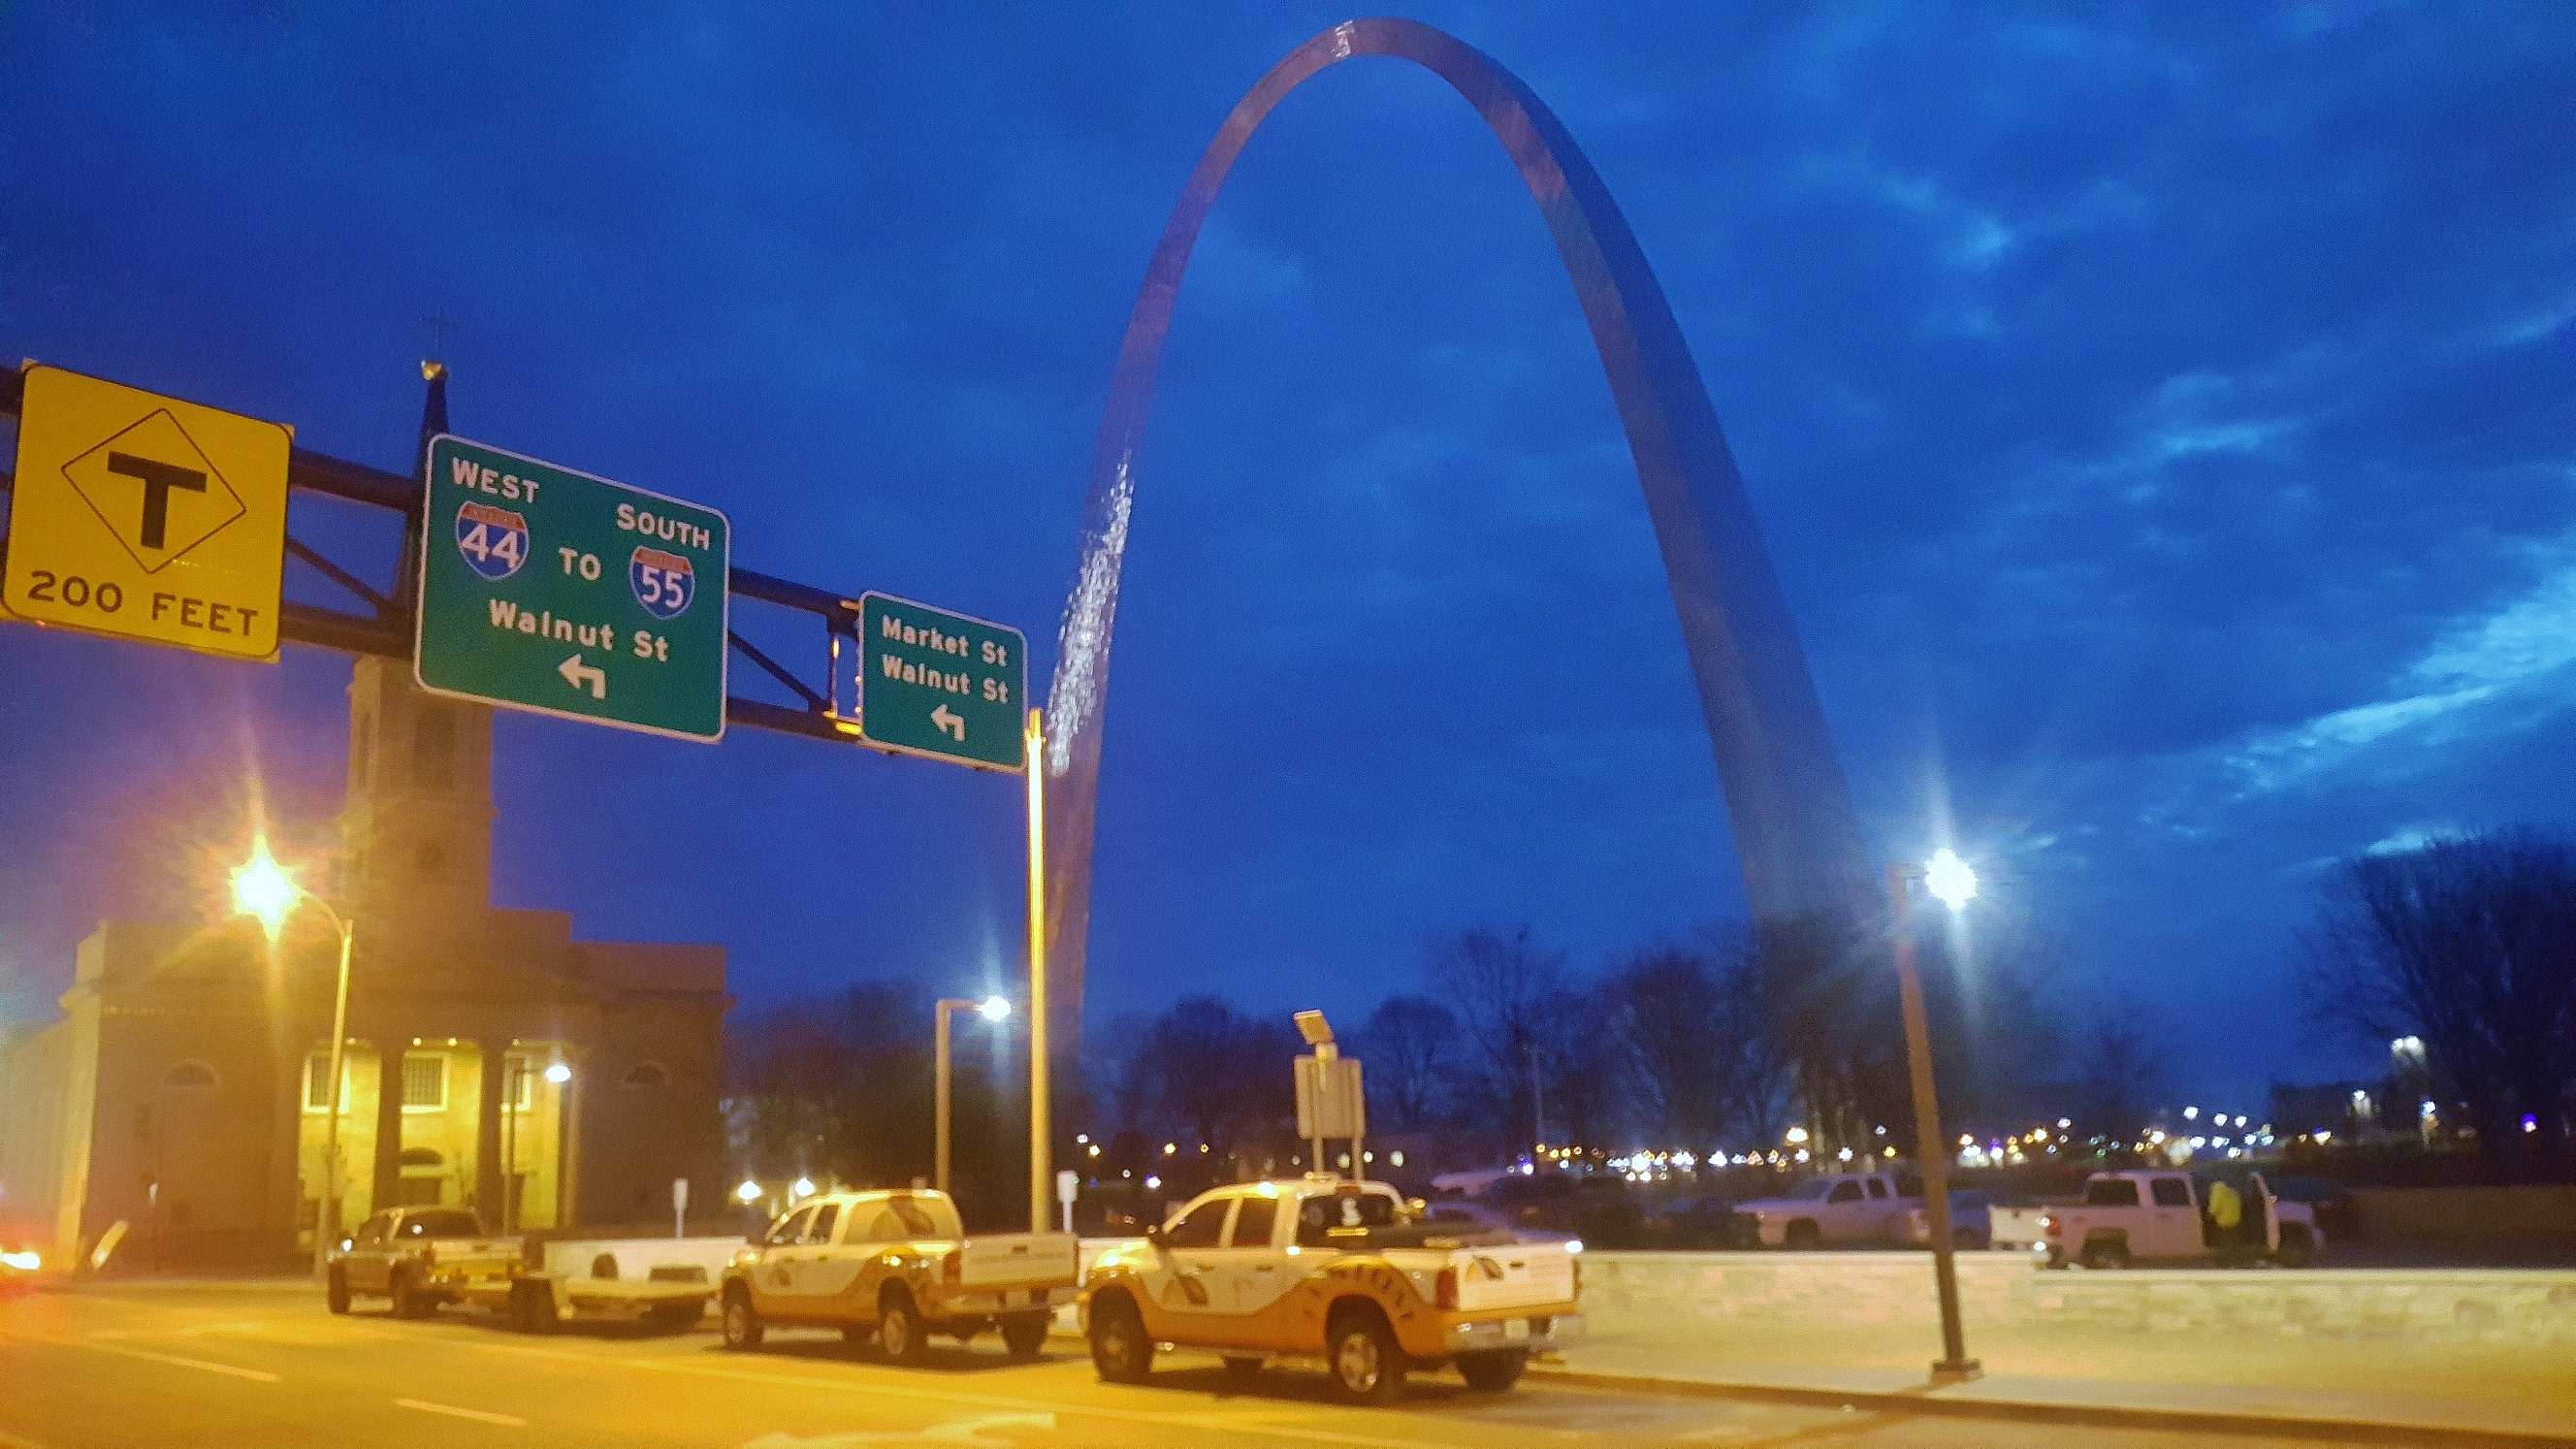 Three Custom Service Crane trucks and a trailer are parked in front of the St. Louis Arch.